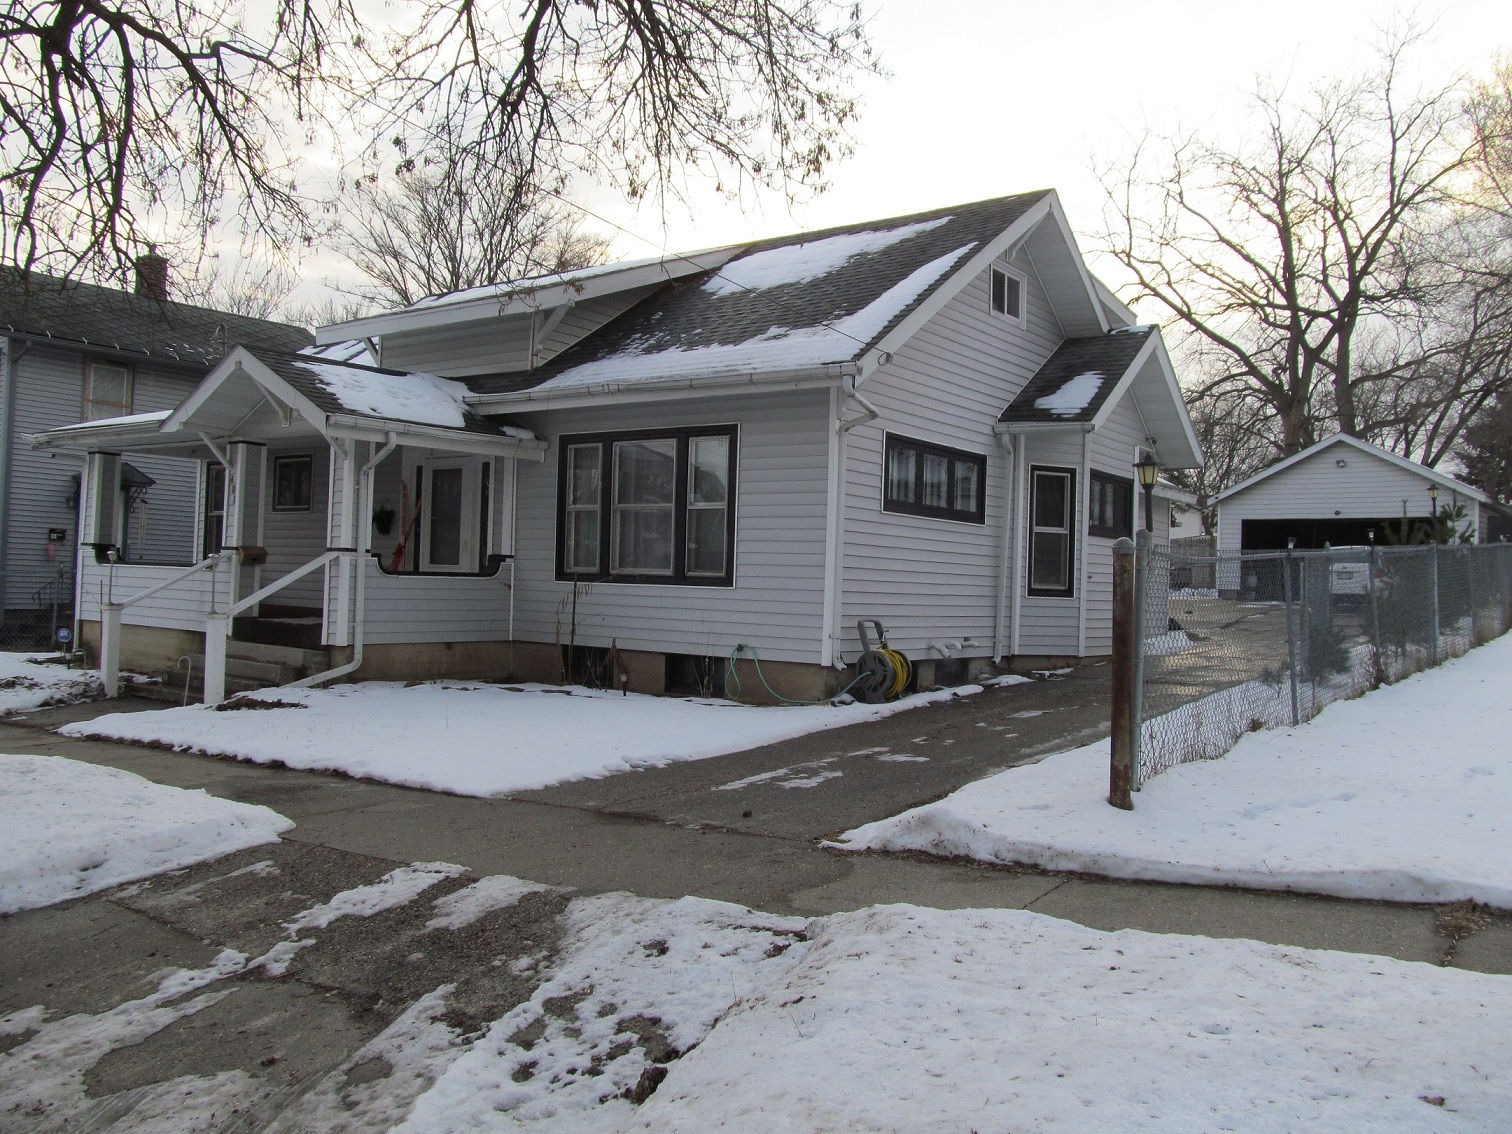 Sold! Janesville WI Short Sale Investment Property